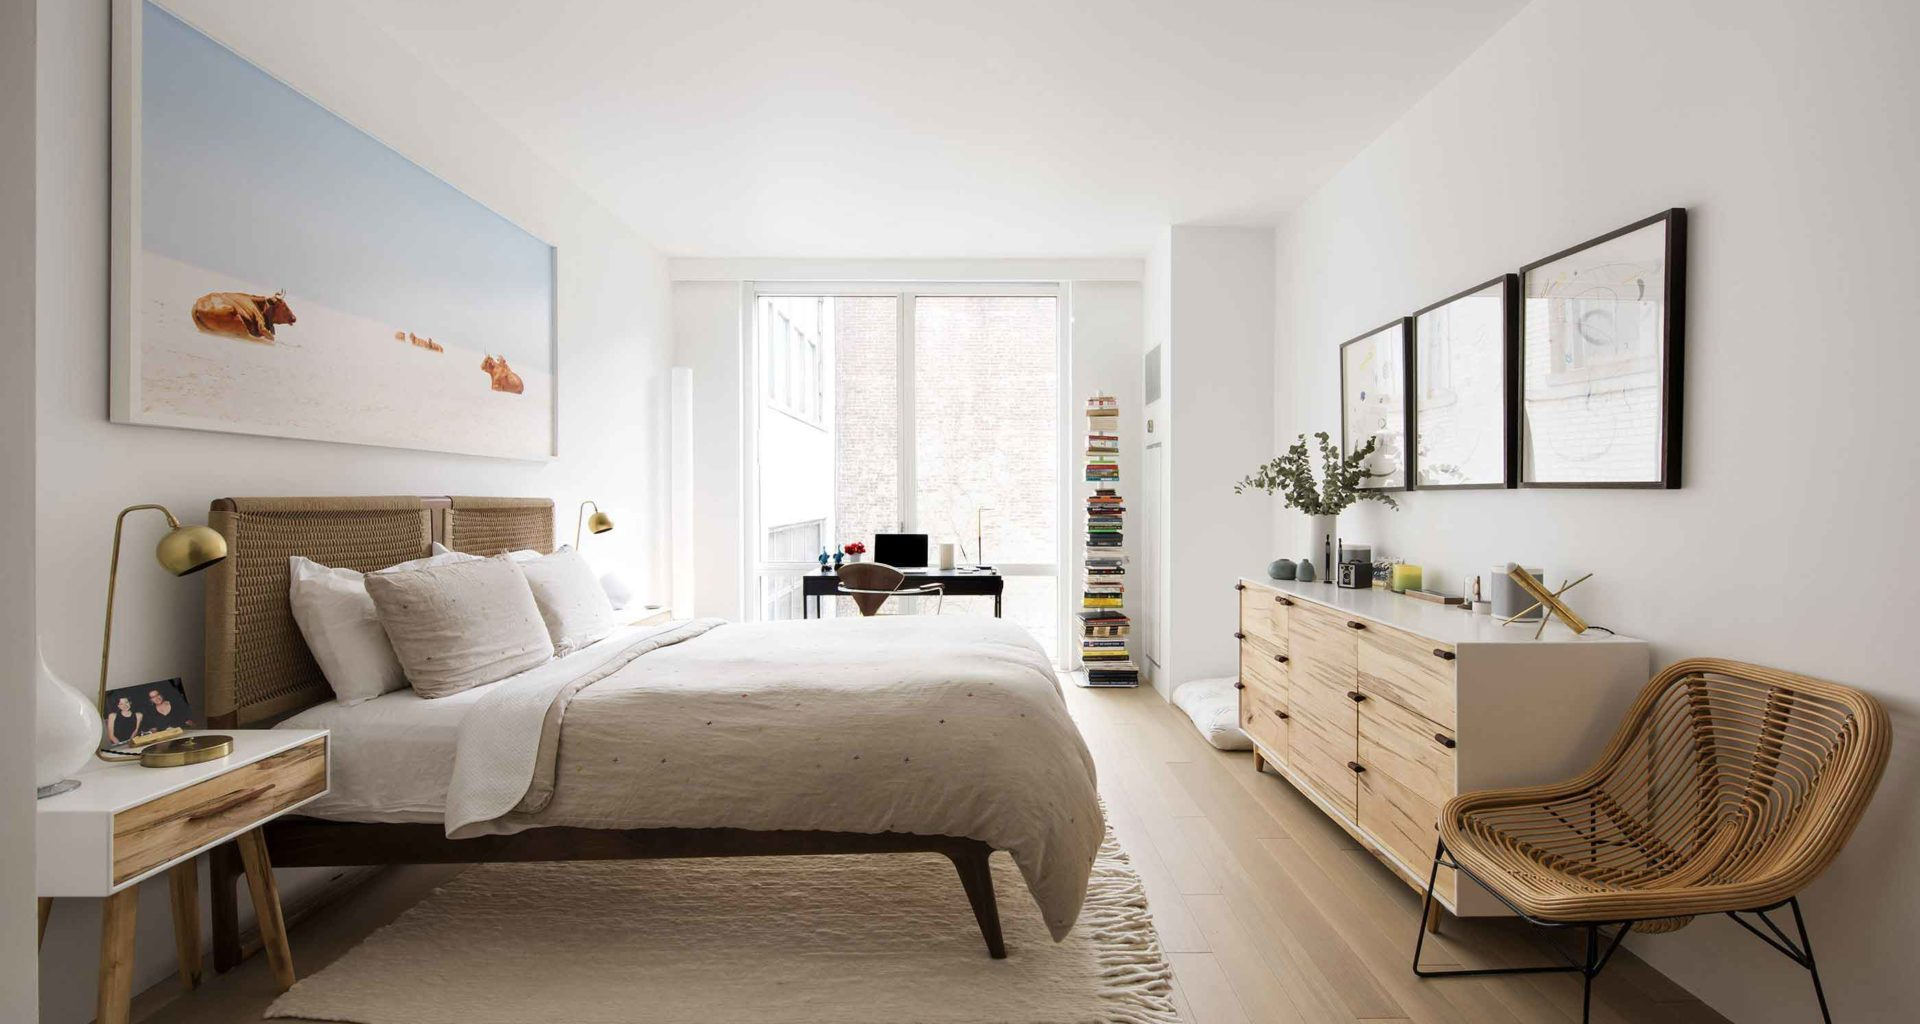 Urban Modern Bedroom Ideas For Your Home with Modern Bedroom Pics